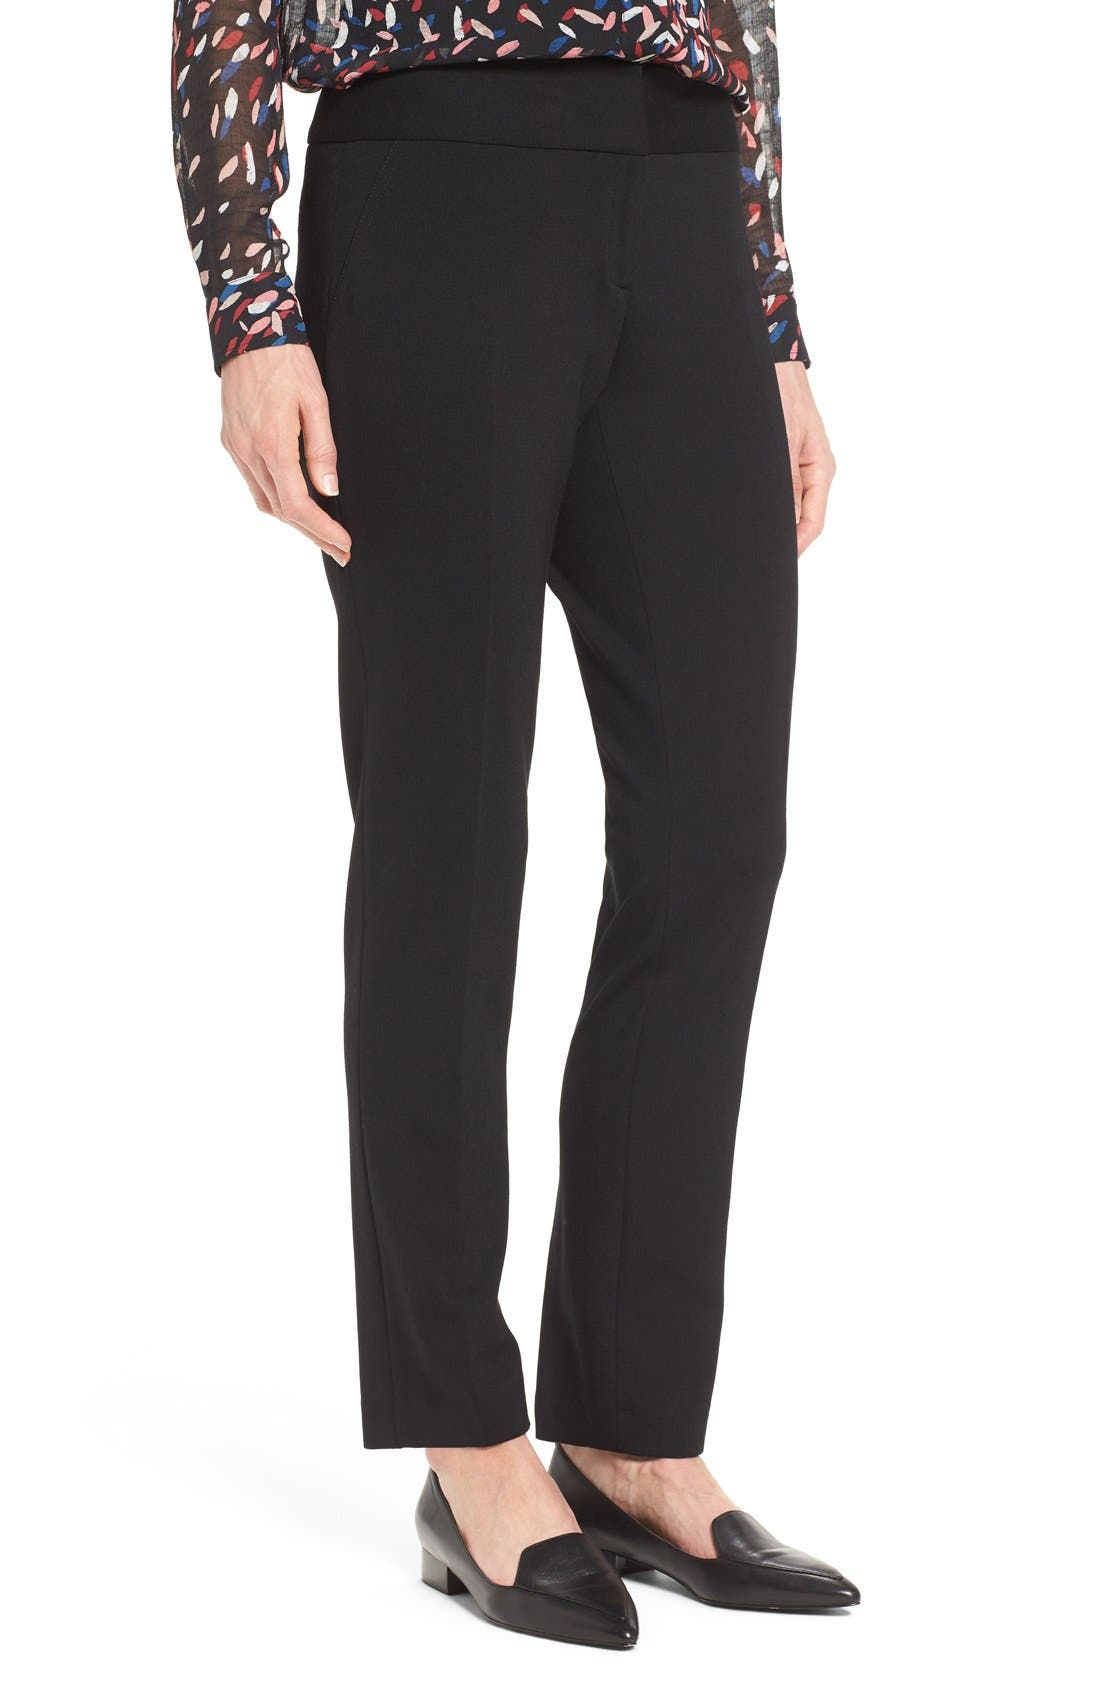 VINCE CAMUTO, Ponte Ankle Pants, Main thumbnail 1, color, BLACK